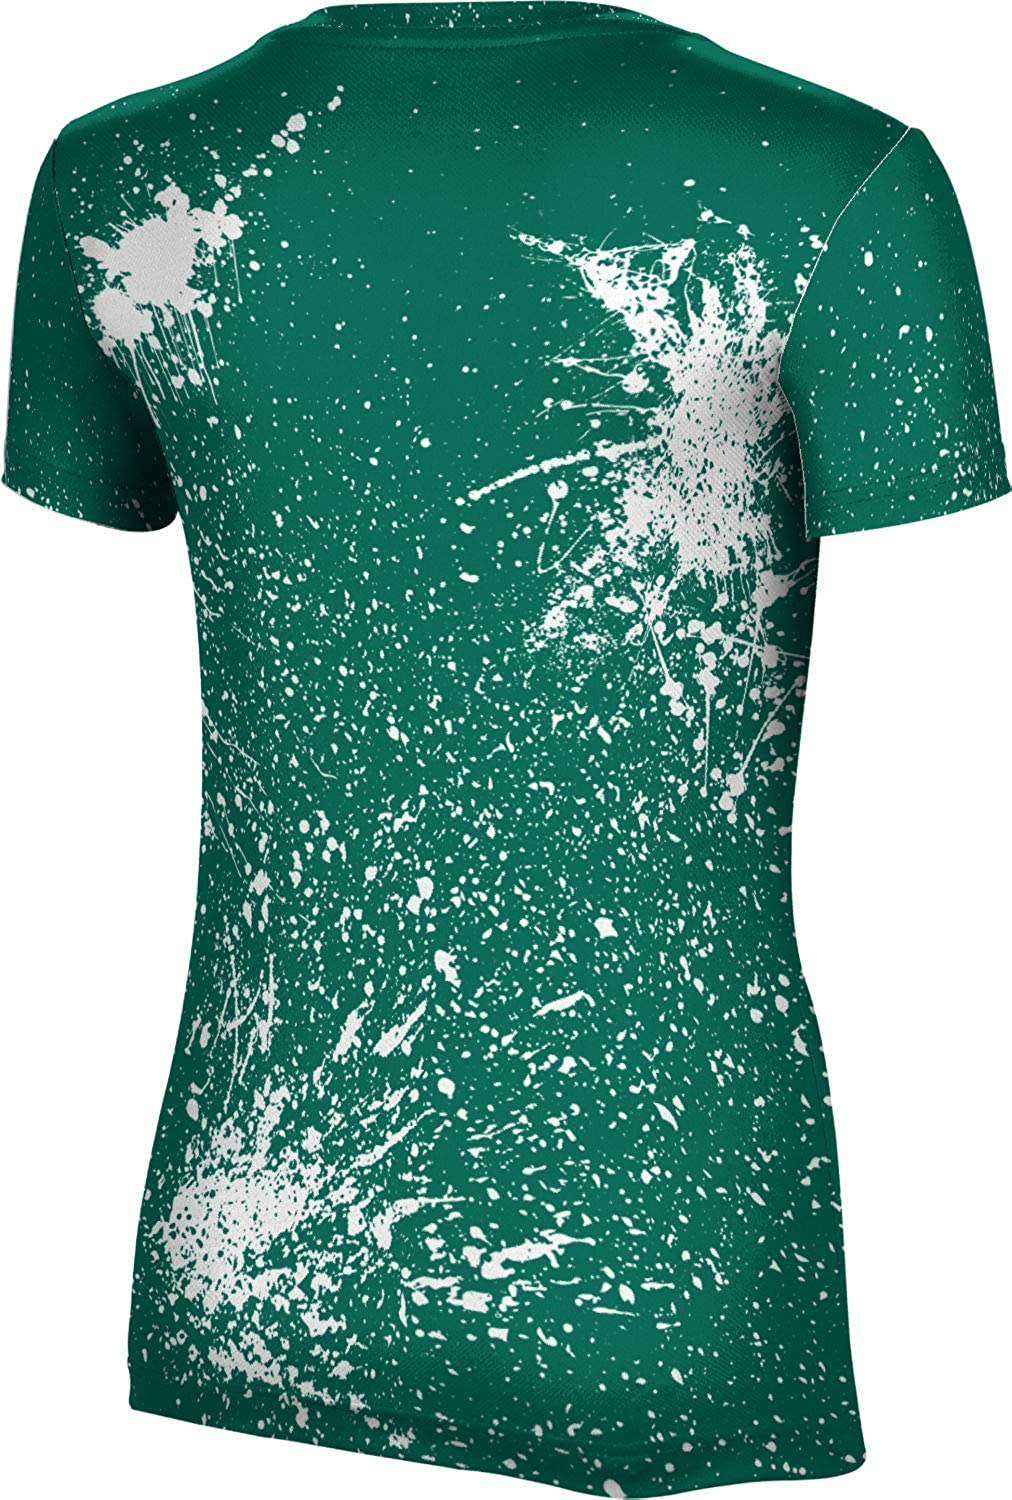 Splatter ProSphere Slippery Rock University Girls Performance T-Shirt